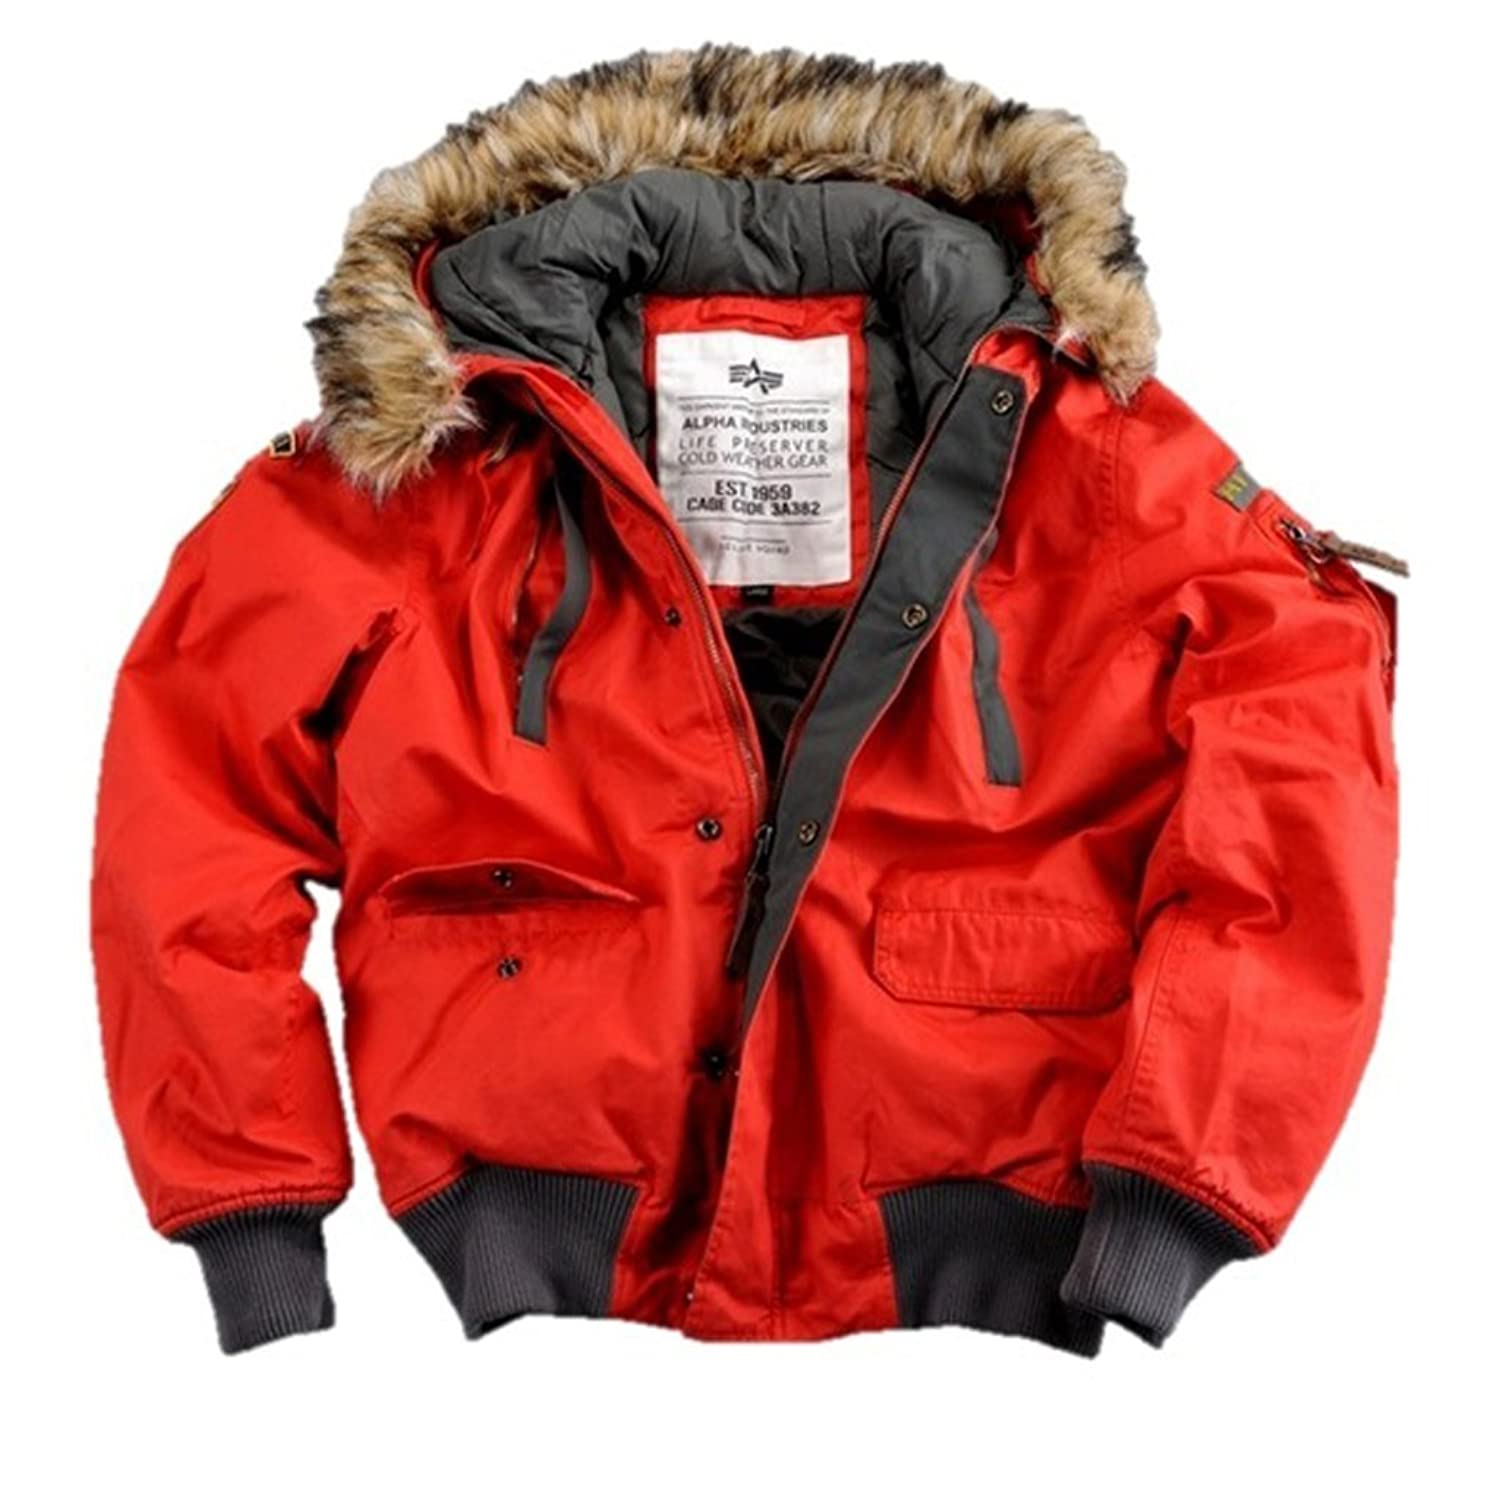 "Alpha Ind. Jacke ""Mountain Jacket"" – red S-3XL NEU günstig"